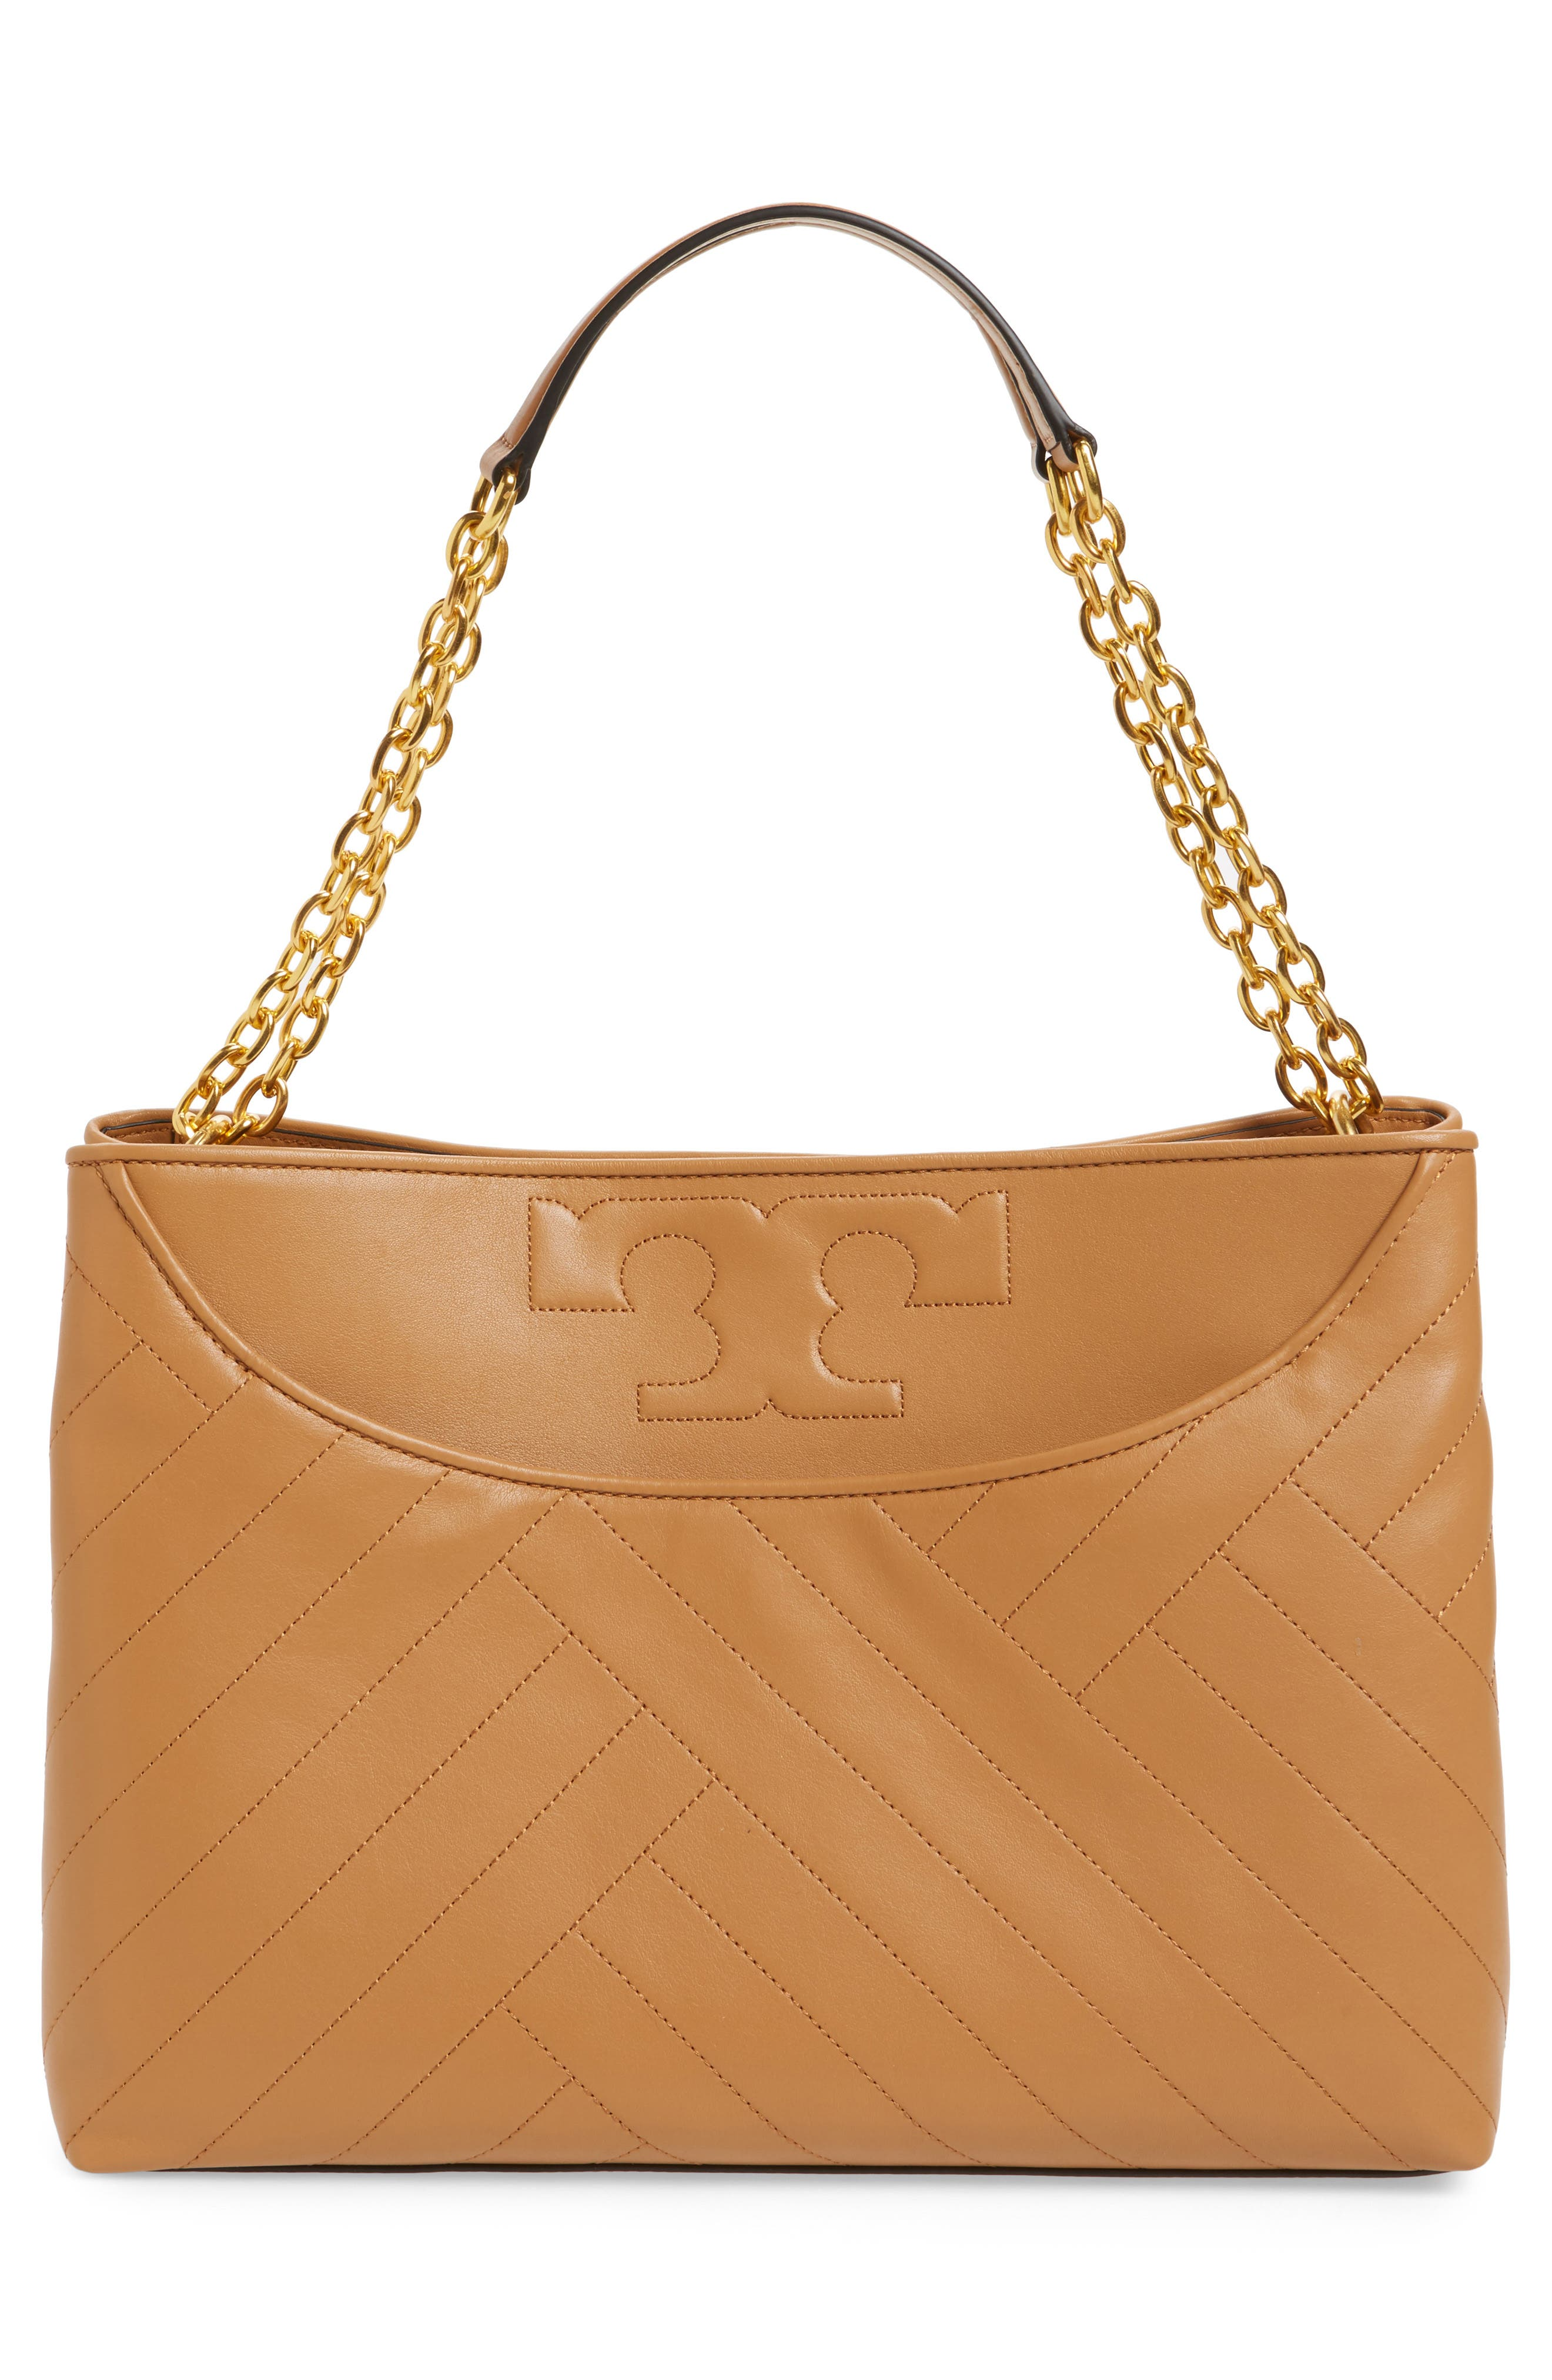 TORY BURCH,                             Alexa Leather Tote,                             Alternate thumbnail 3, color,                             200